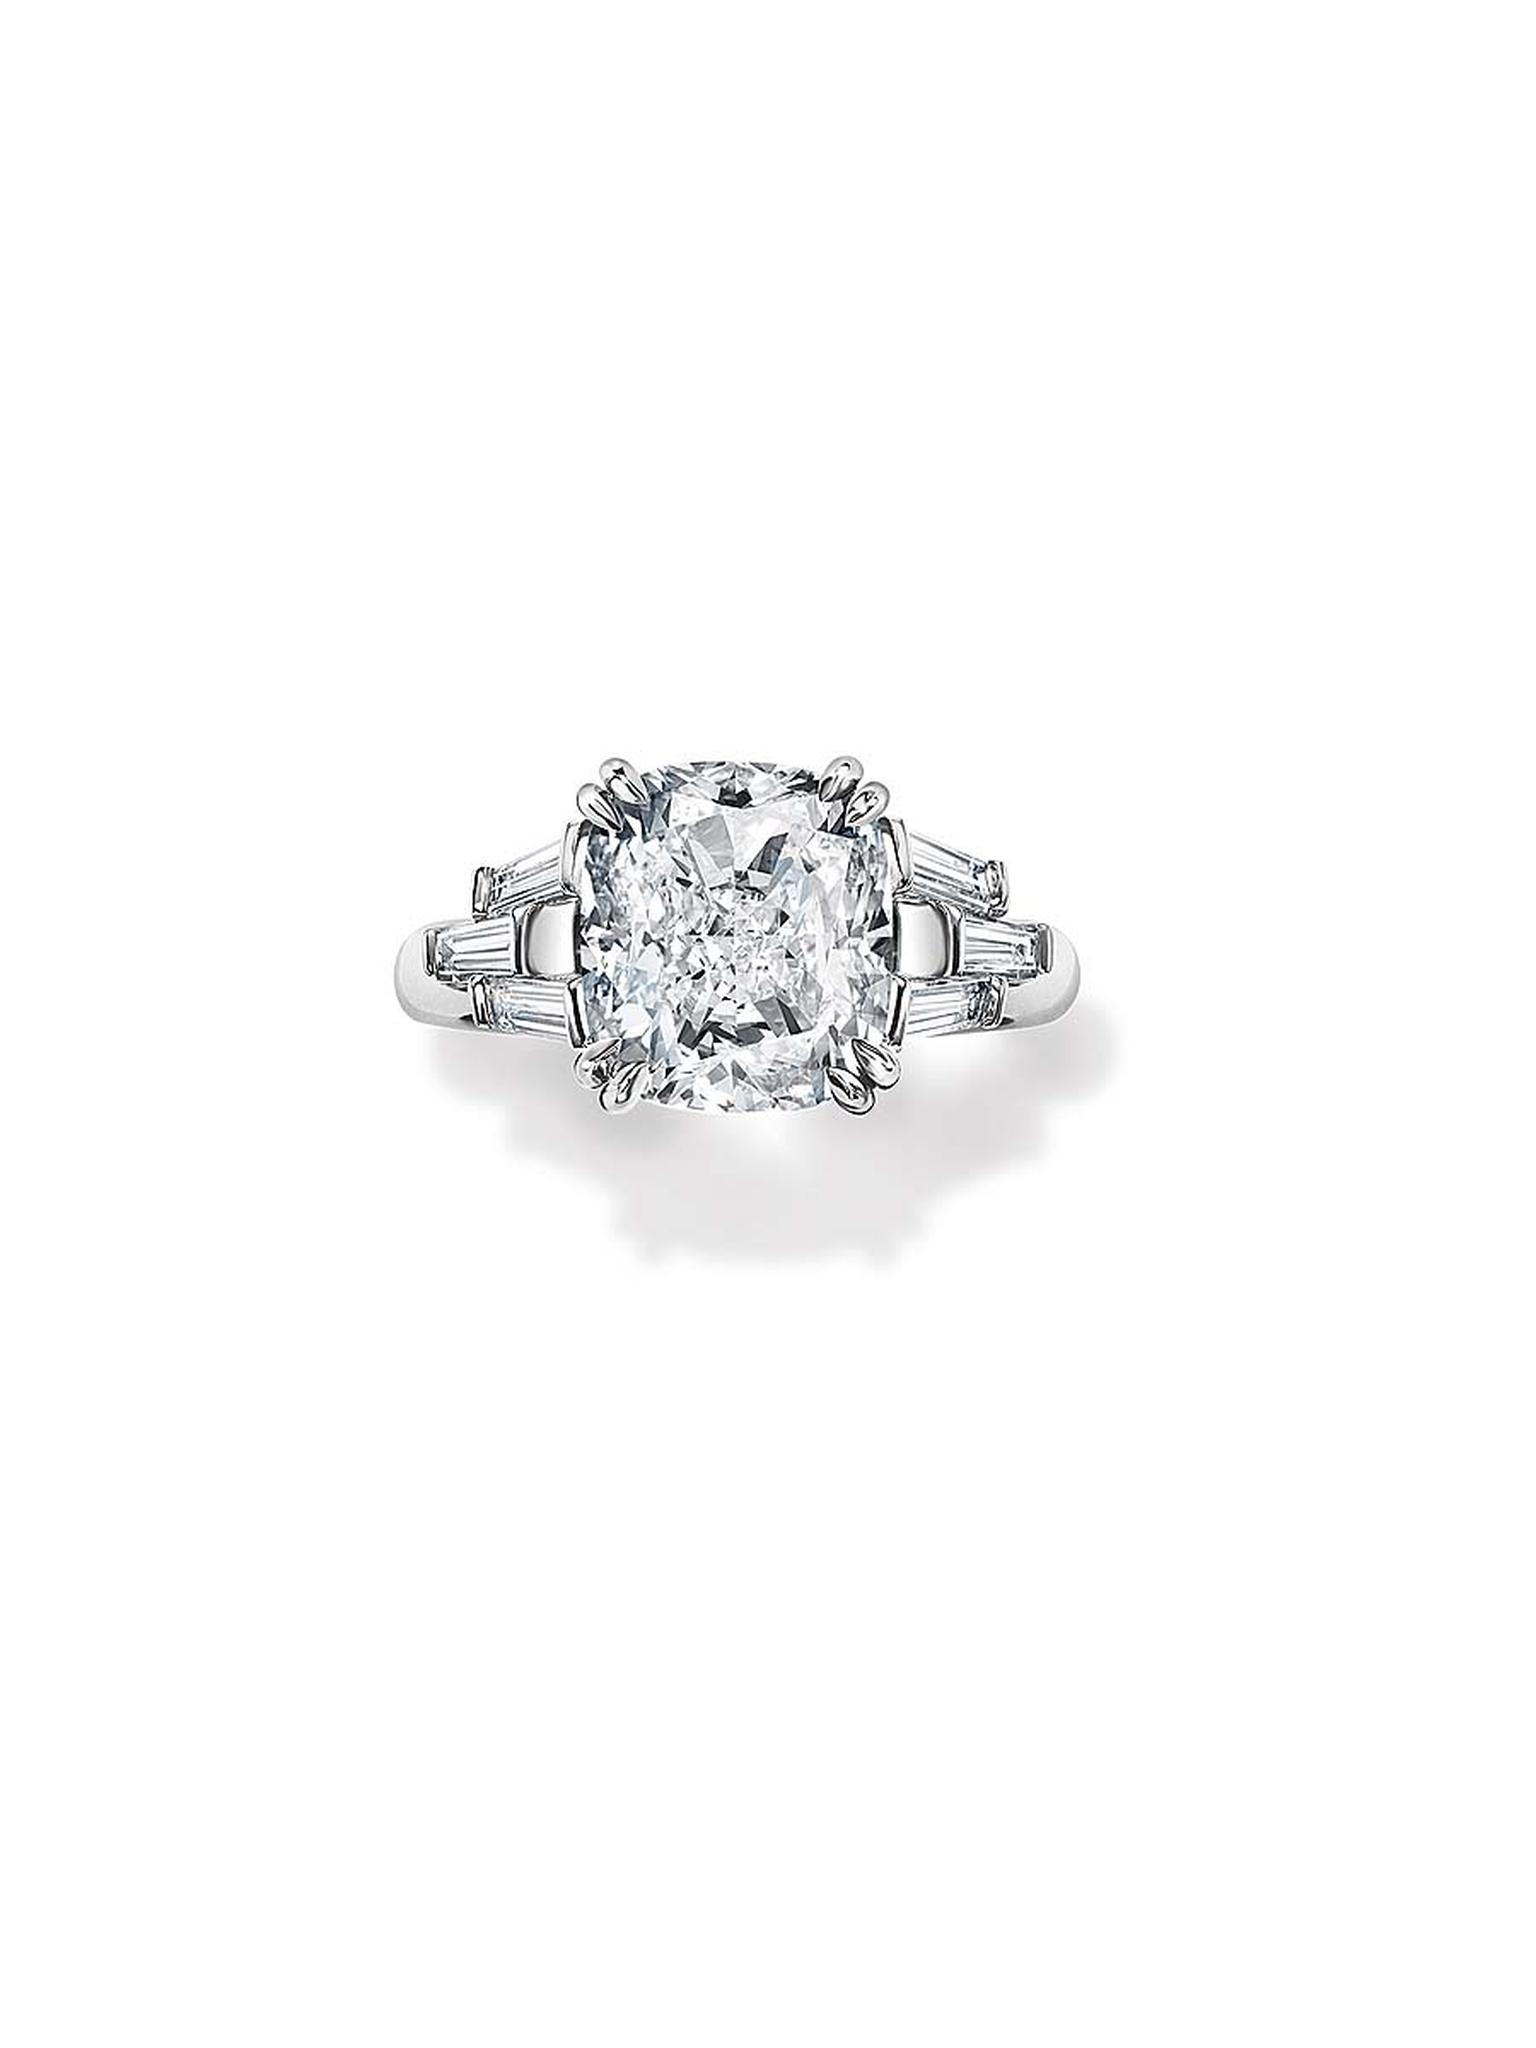 HarryWinstonUltimateBridalRings002.jpg